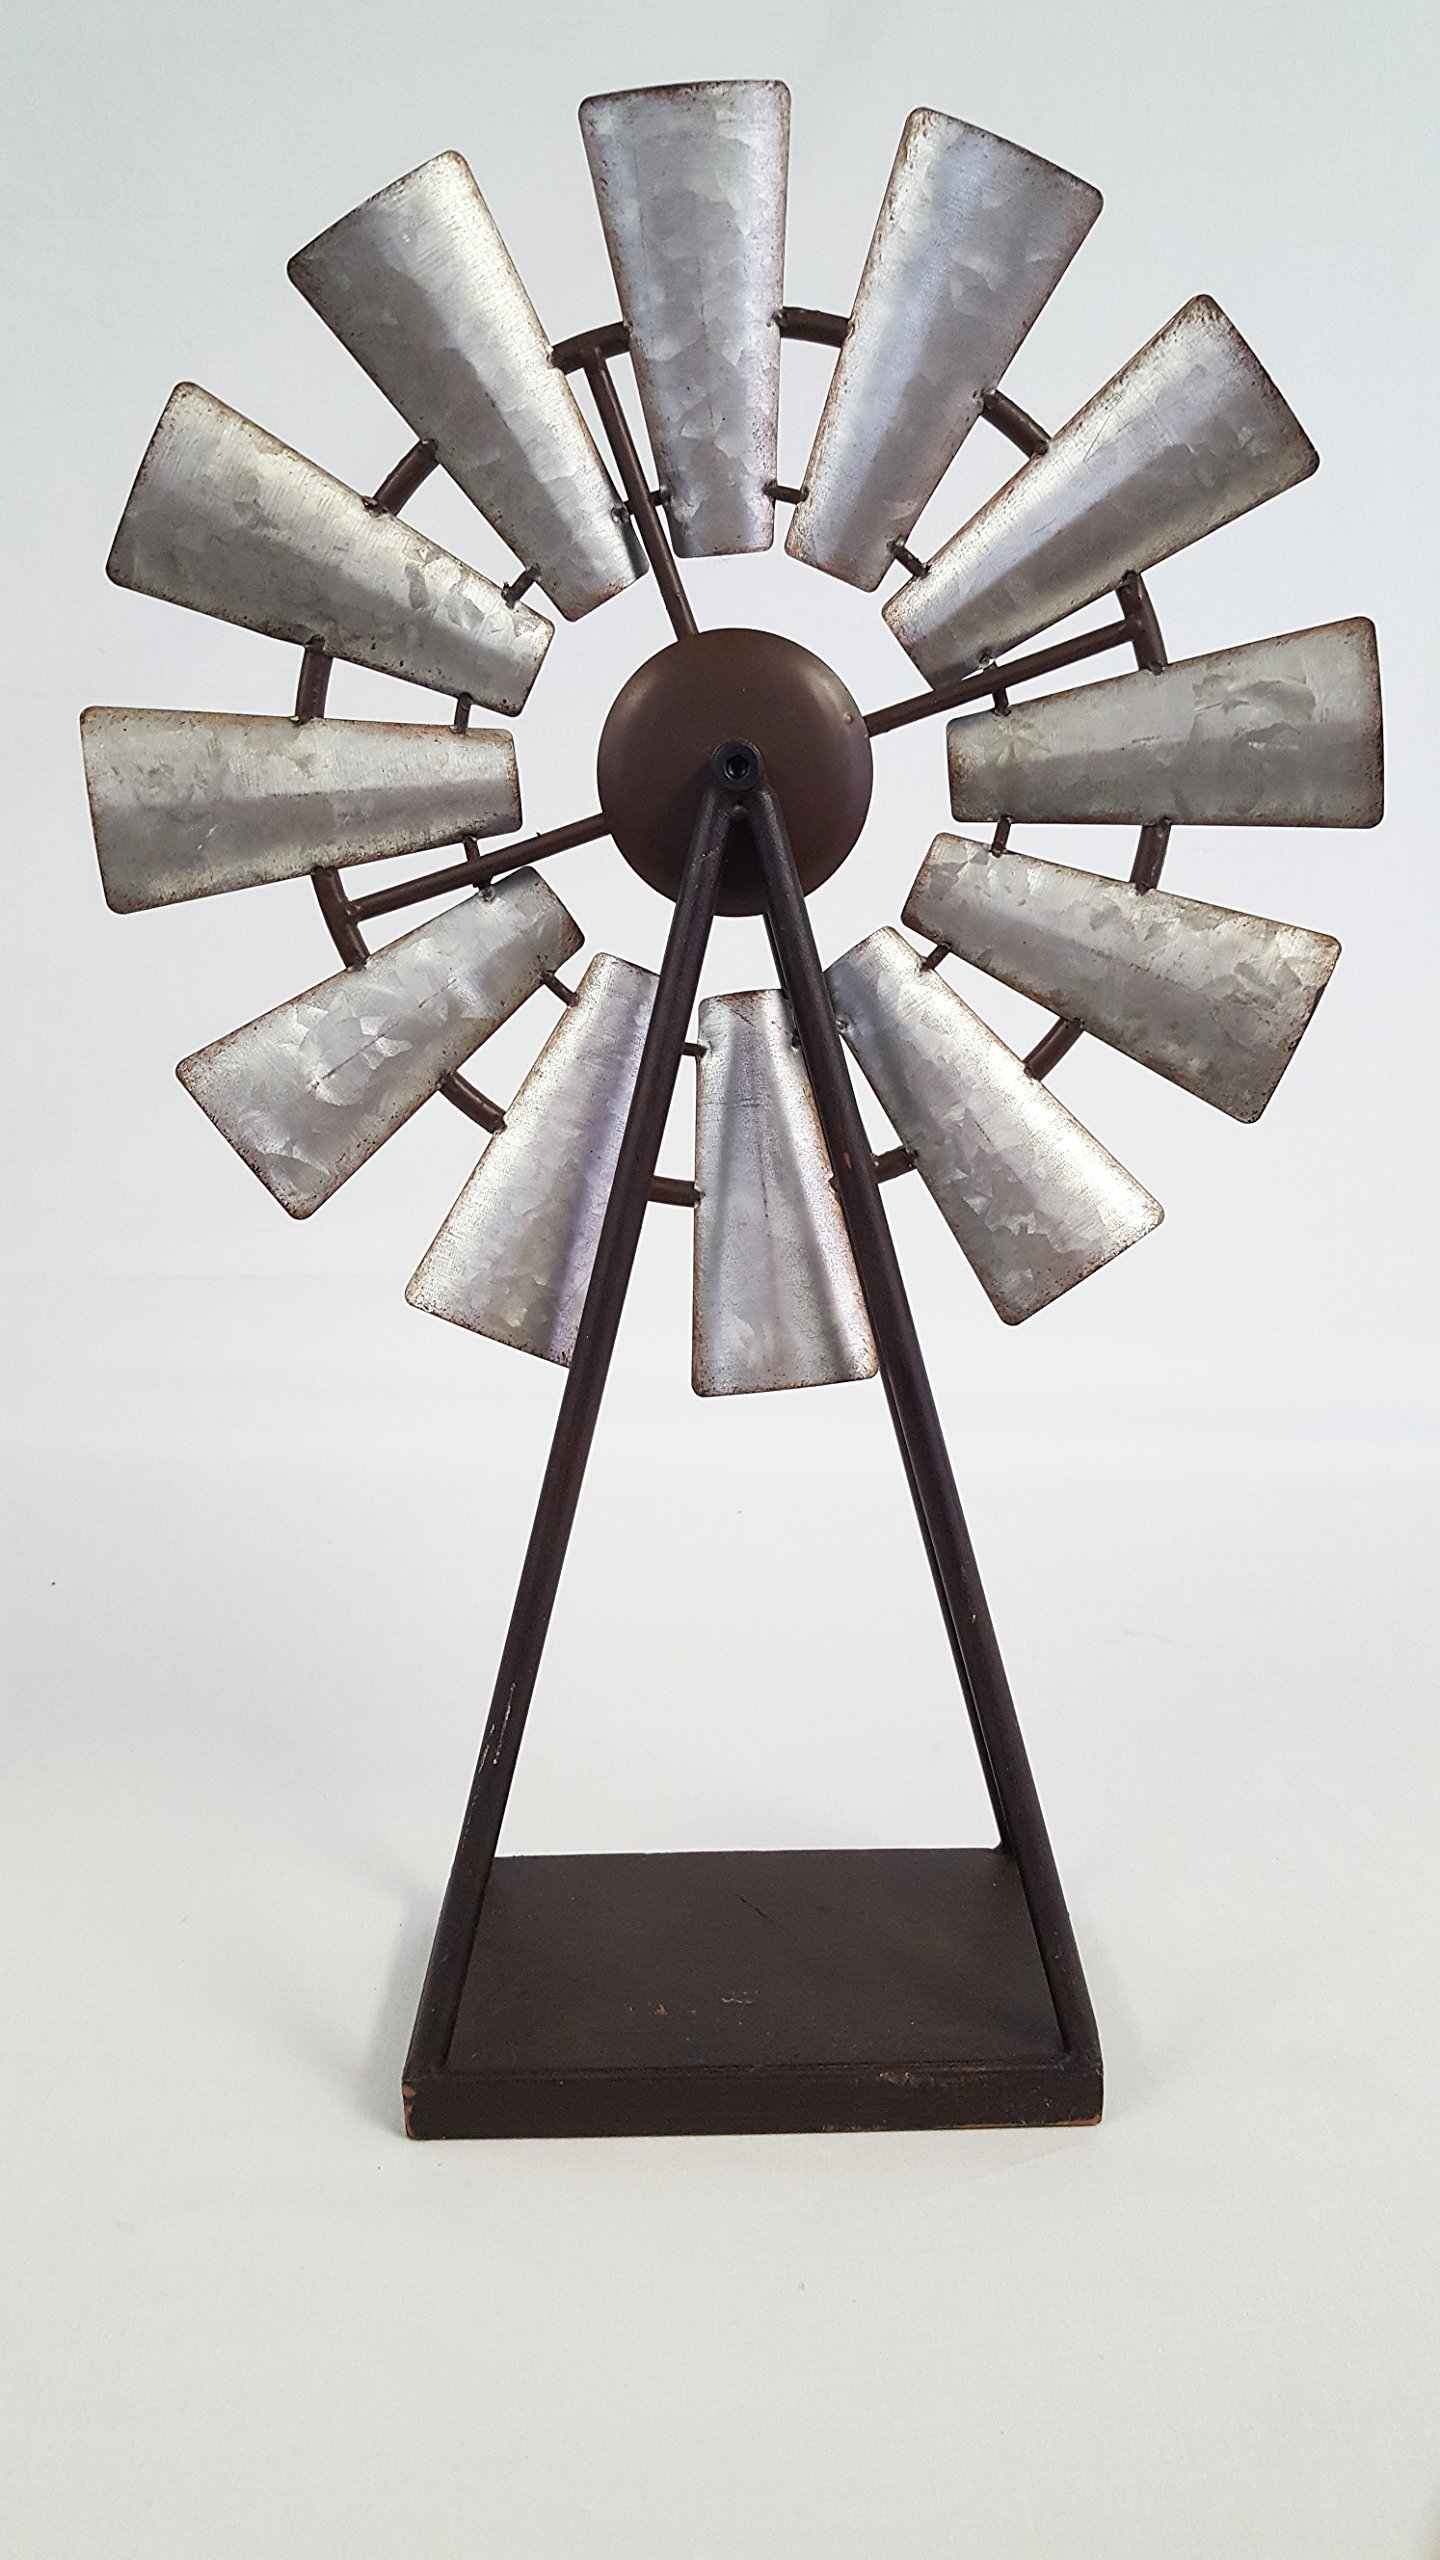 Large Standing and Spinning Windmill Metal Decor by Everydecor (Image #1)